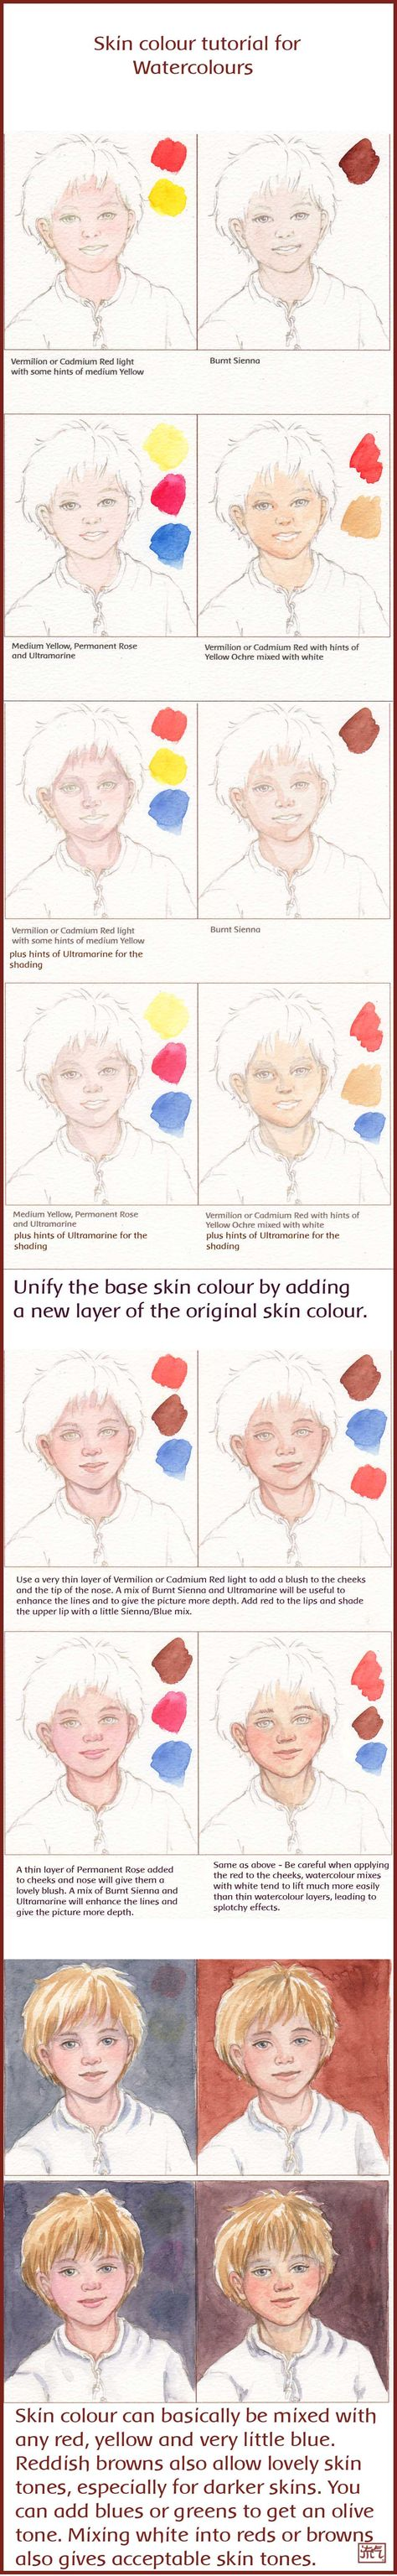 Skin Colour Tutorial for Watercolours by Leochi.deviantart.com on @deviantART